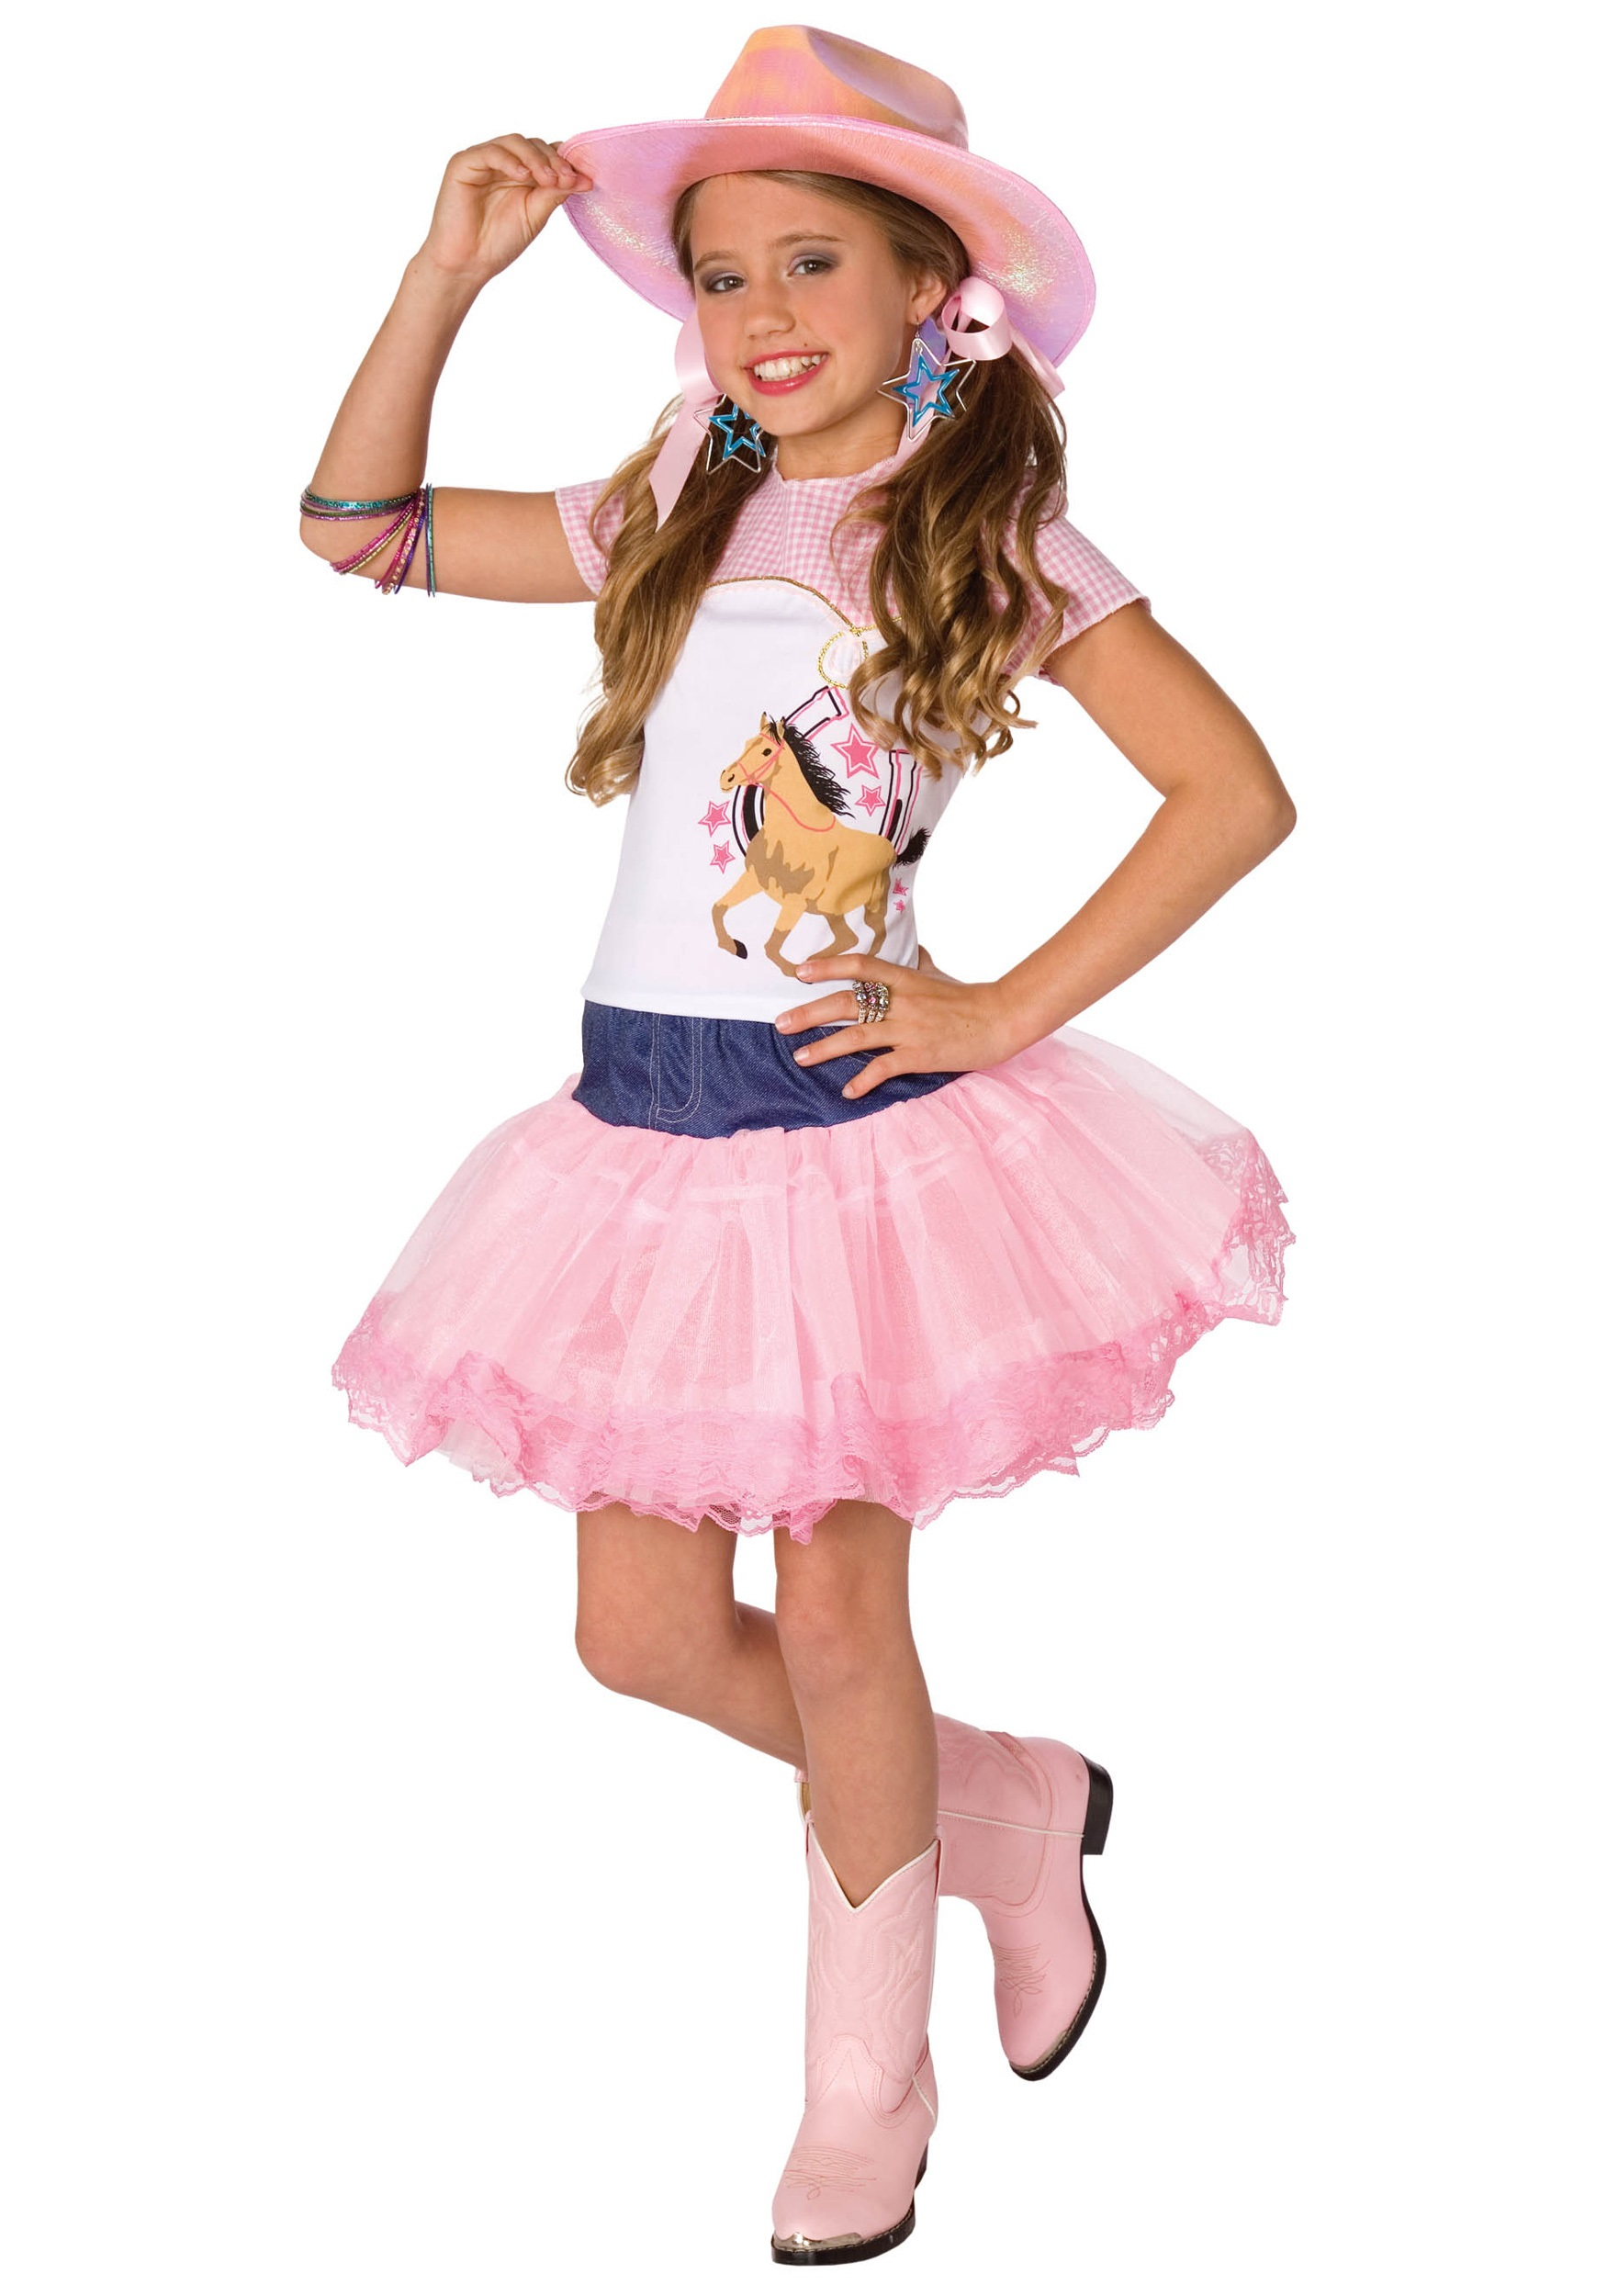 planet pop star cowgirl costume - halloween costume ideas 2018